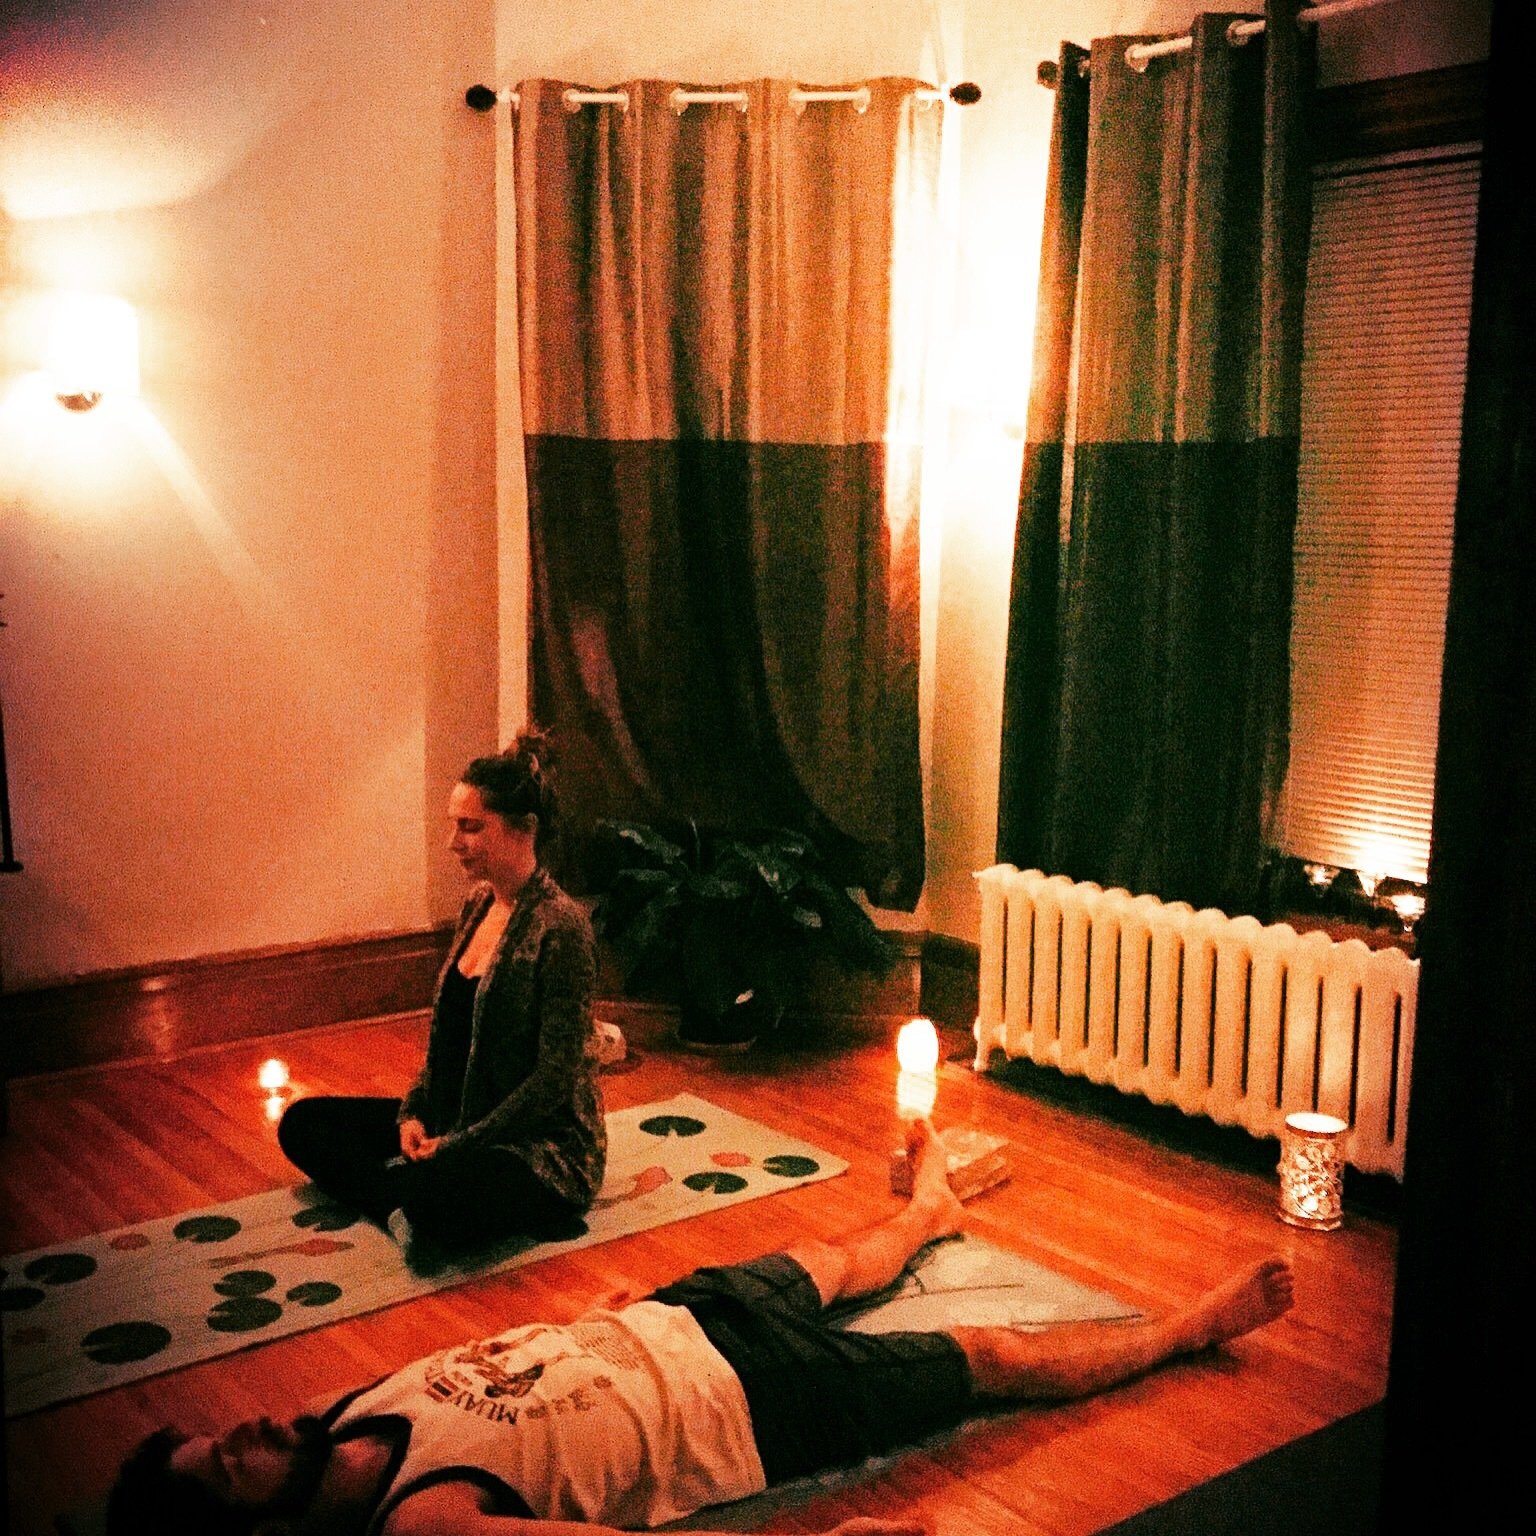 yoga studio, Yin, small class, kitchener, Waterloo